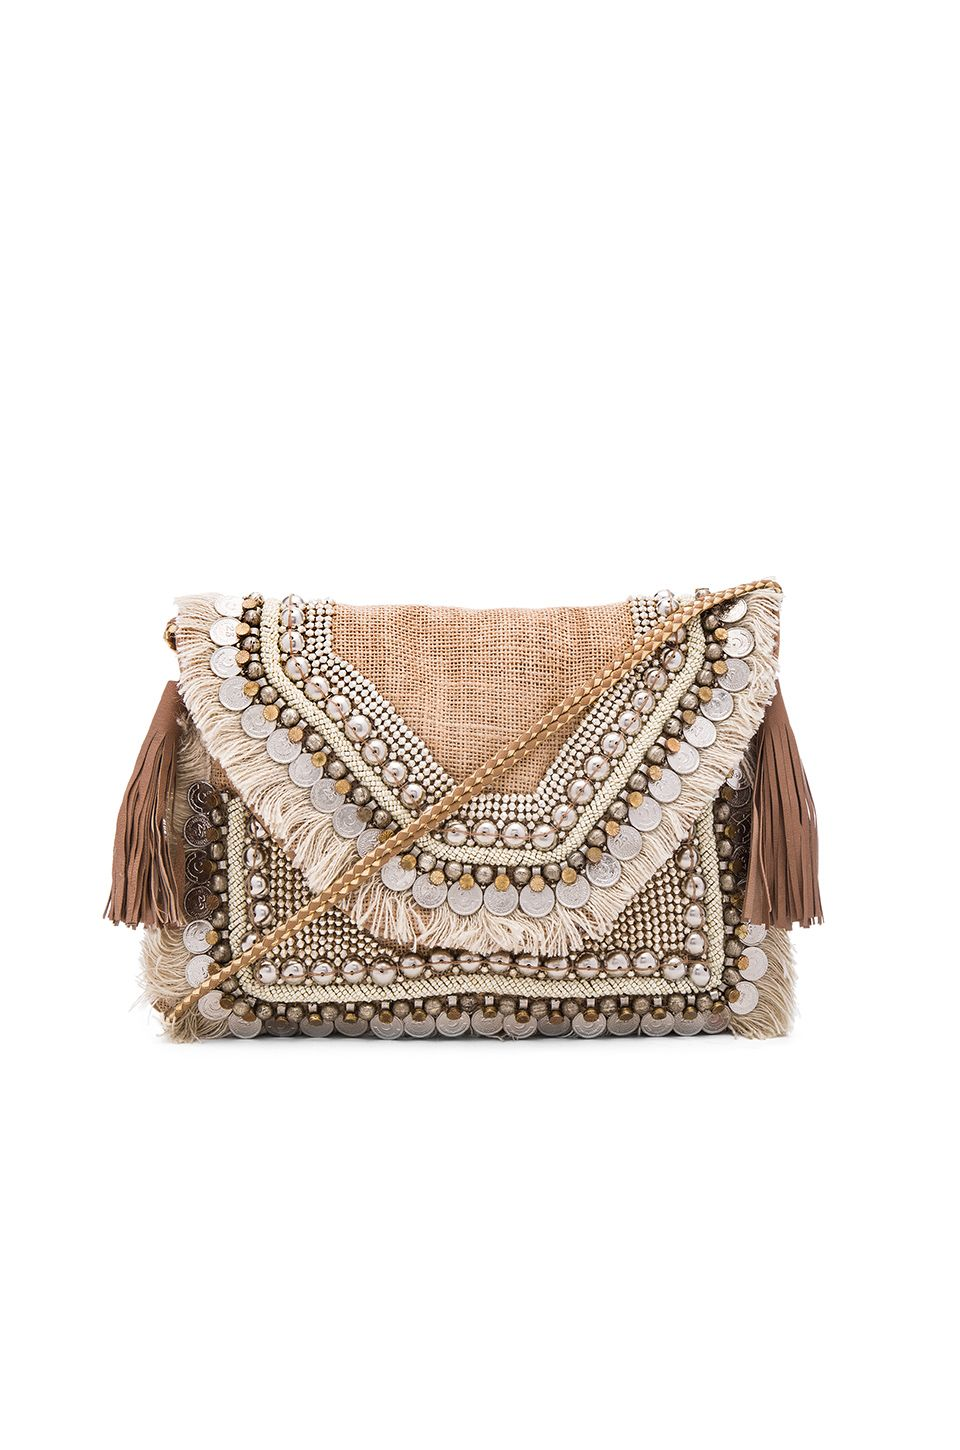 Watch - Wear you Trendswould a box purse video